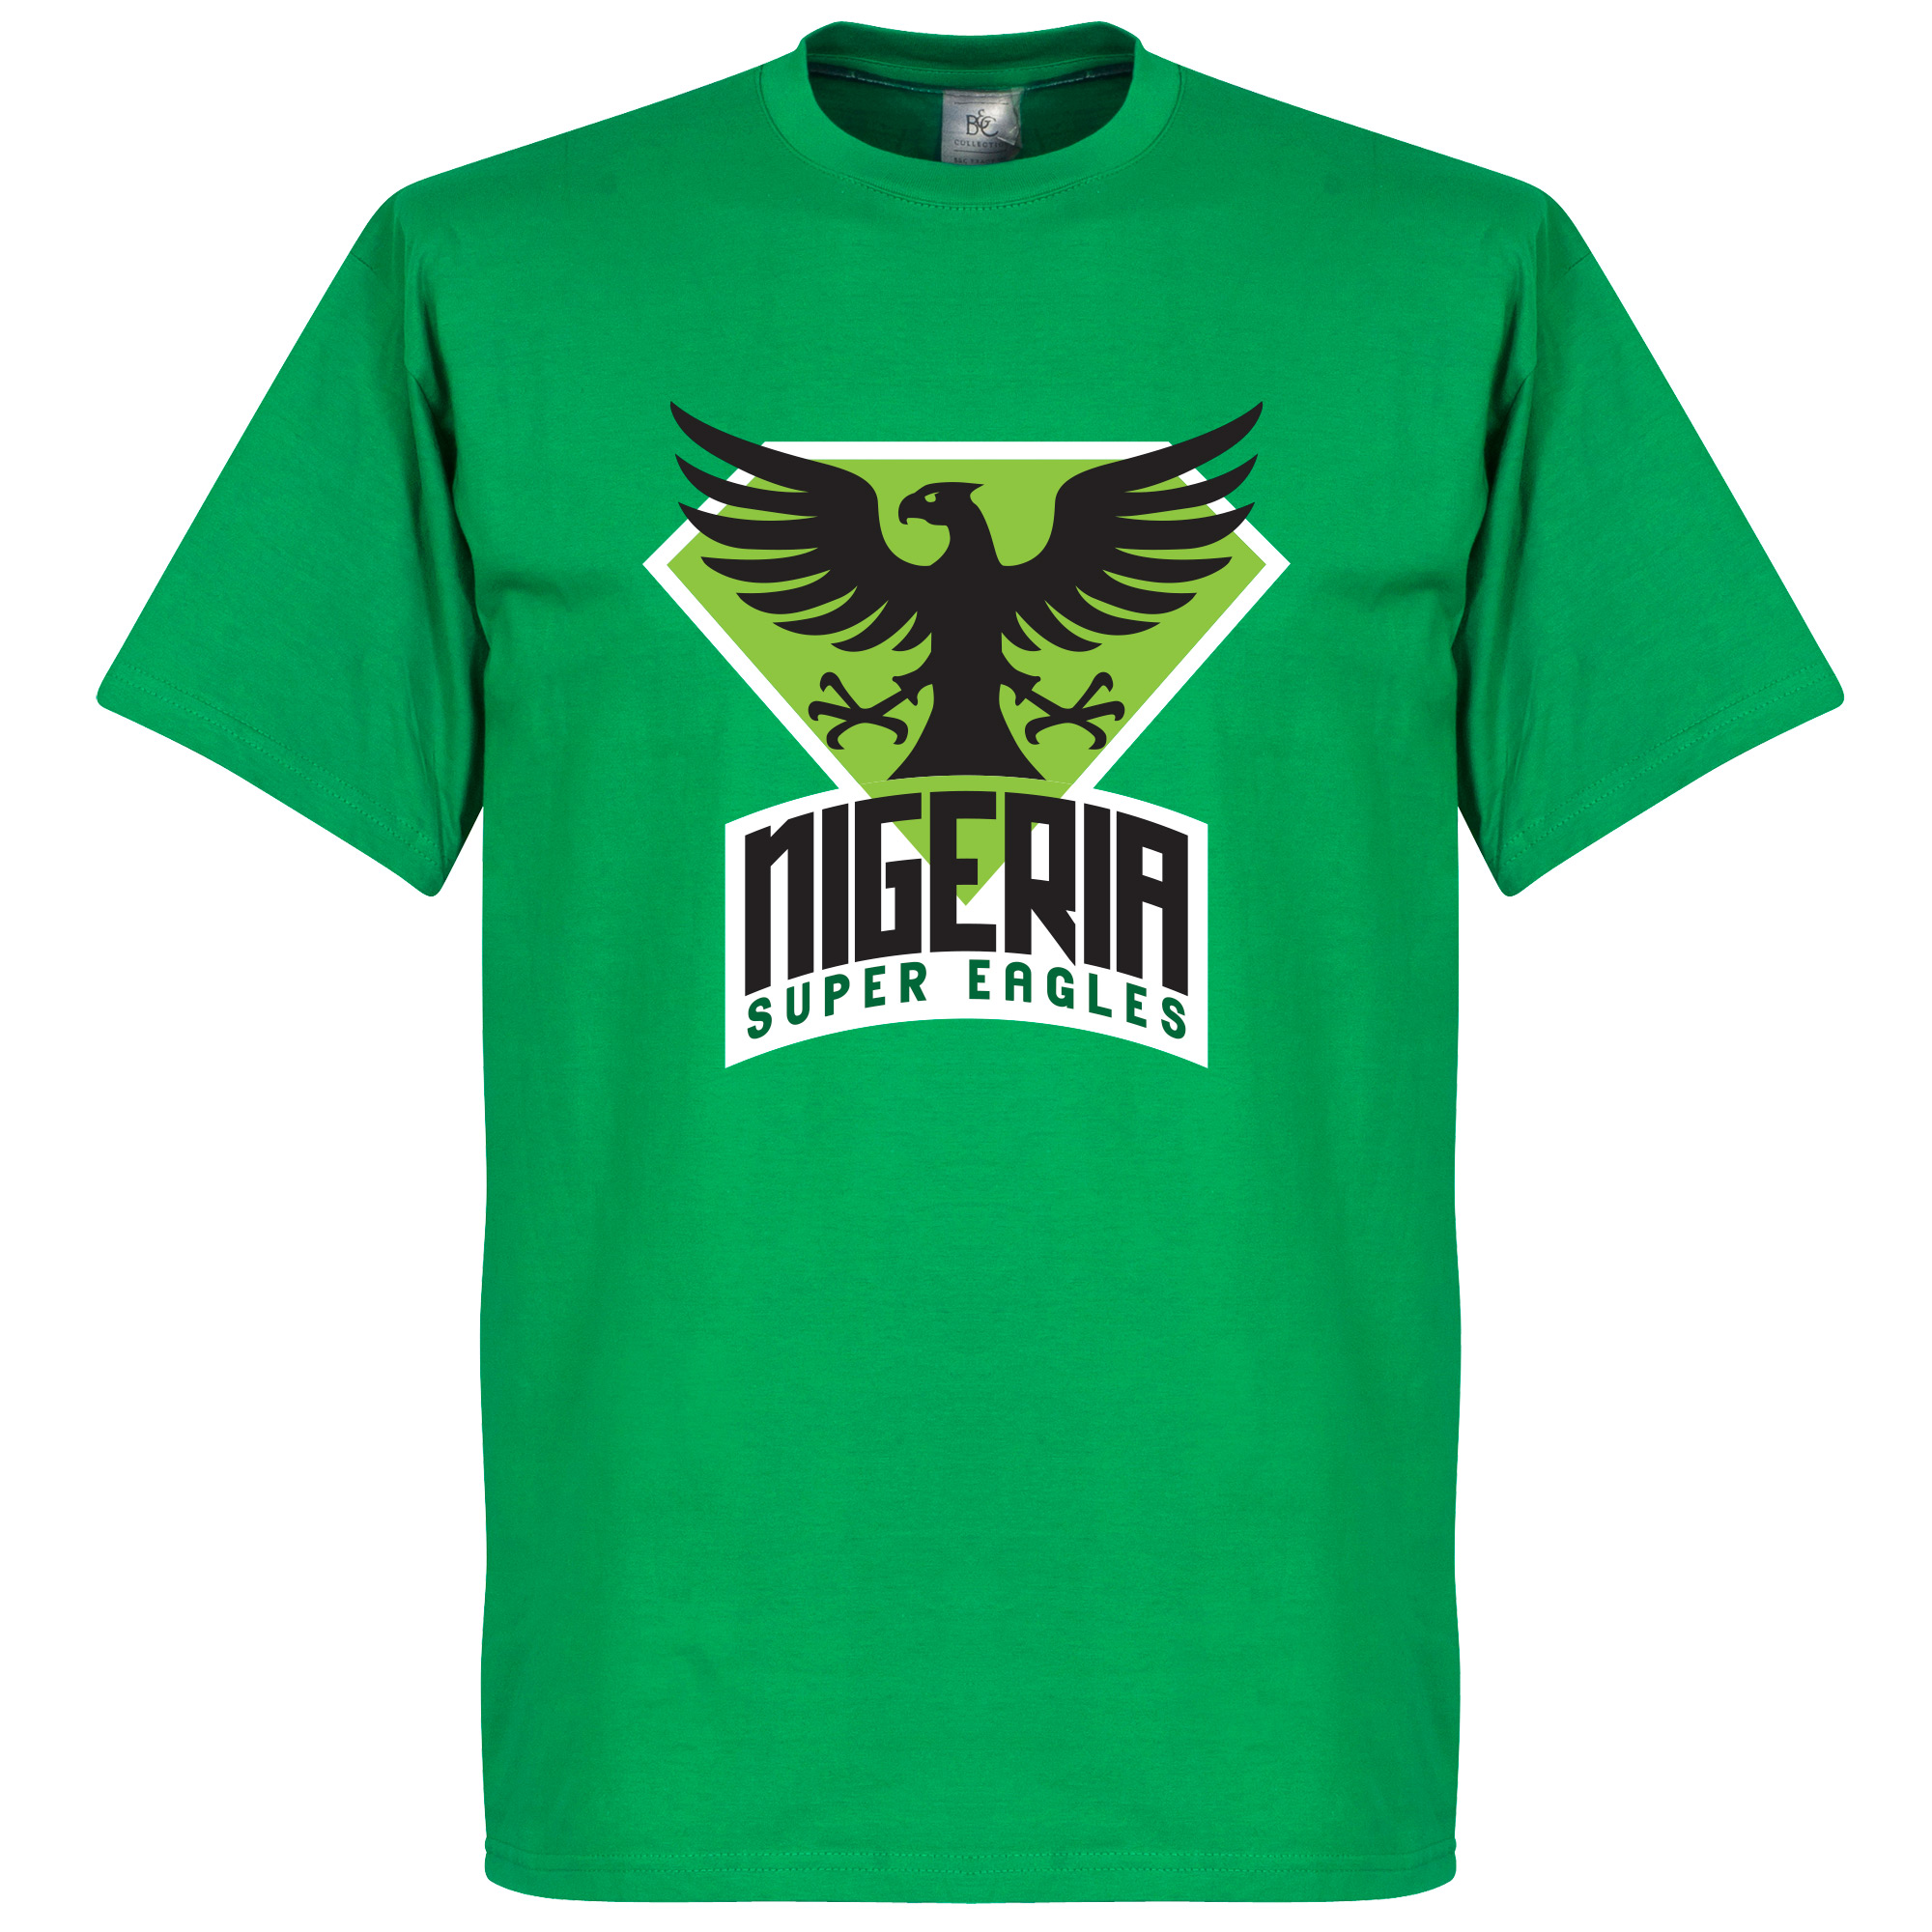 Nigeria Super Eagles Tee - L